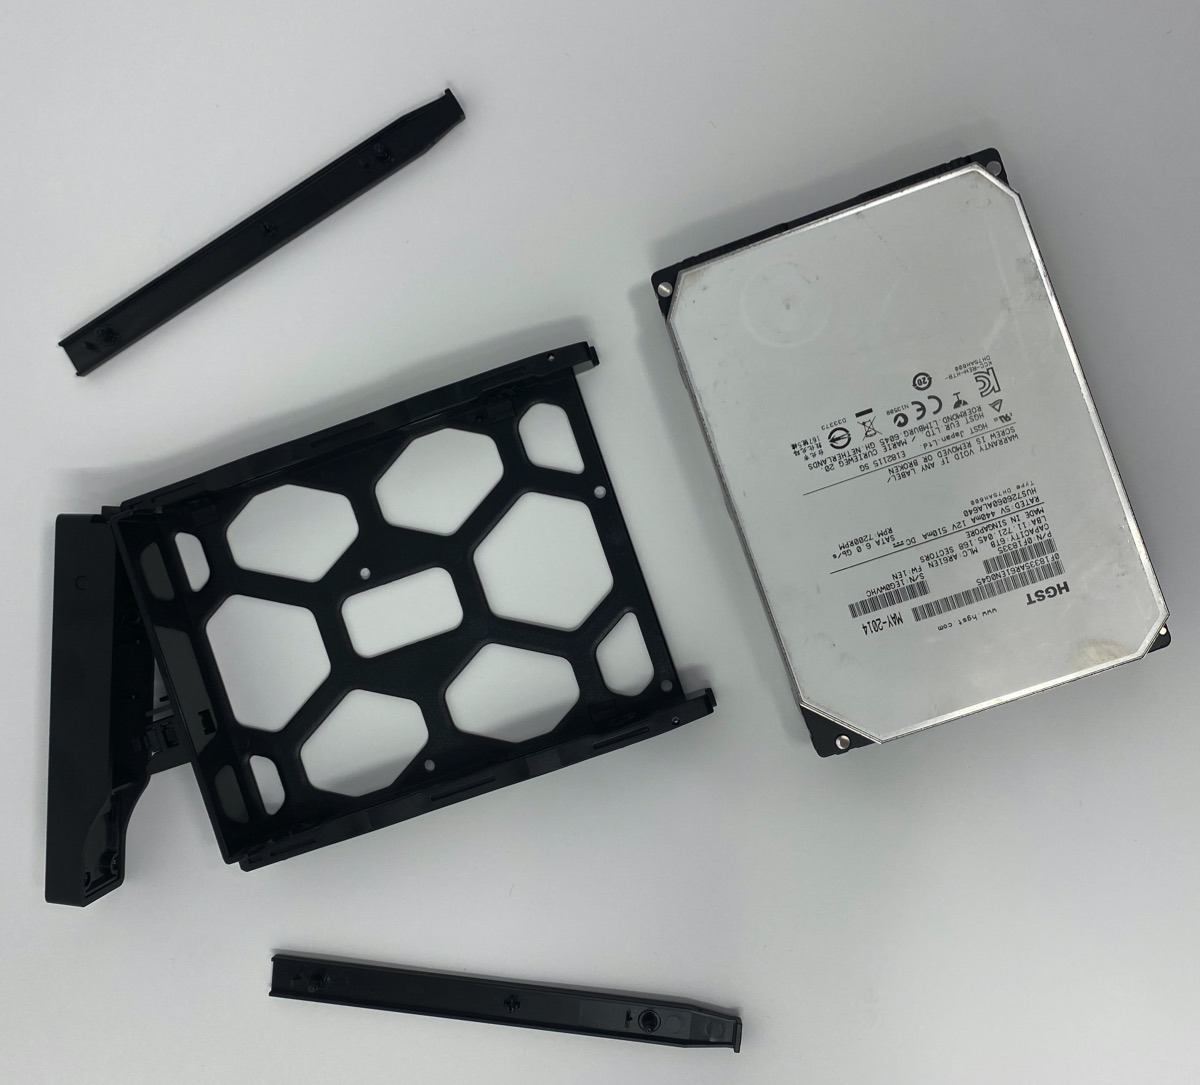 Loading a hard drive into a Synology DS-1618+ network attached storage device